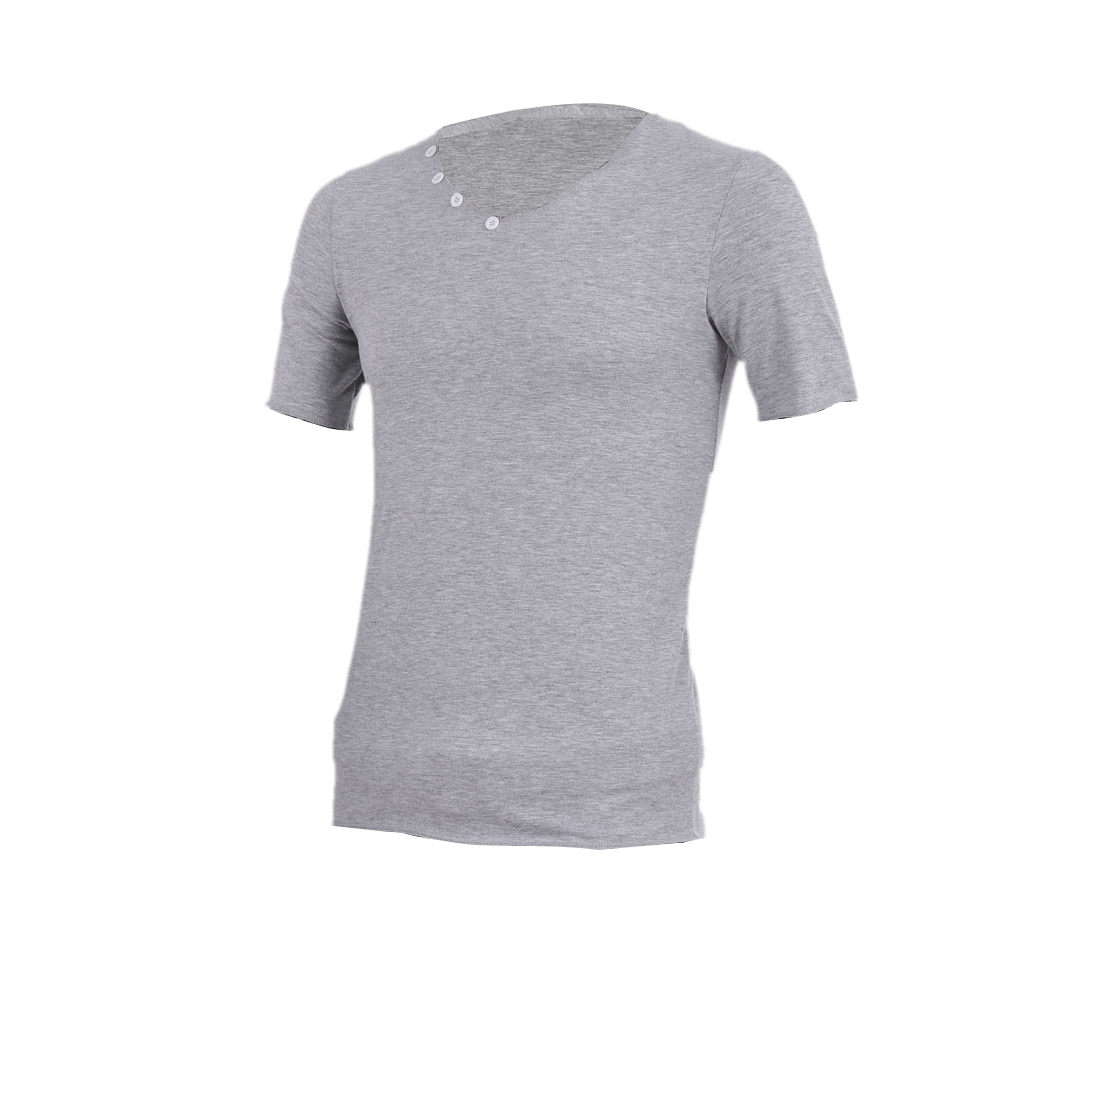 Light Grey M Pullover Design Skinny Fit Style Essential T-Shirt for Men